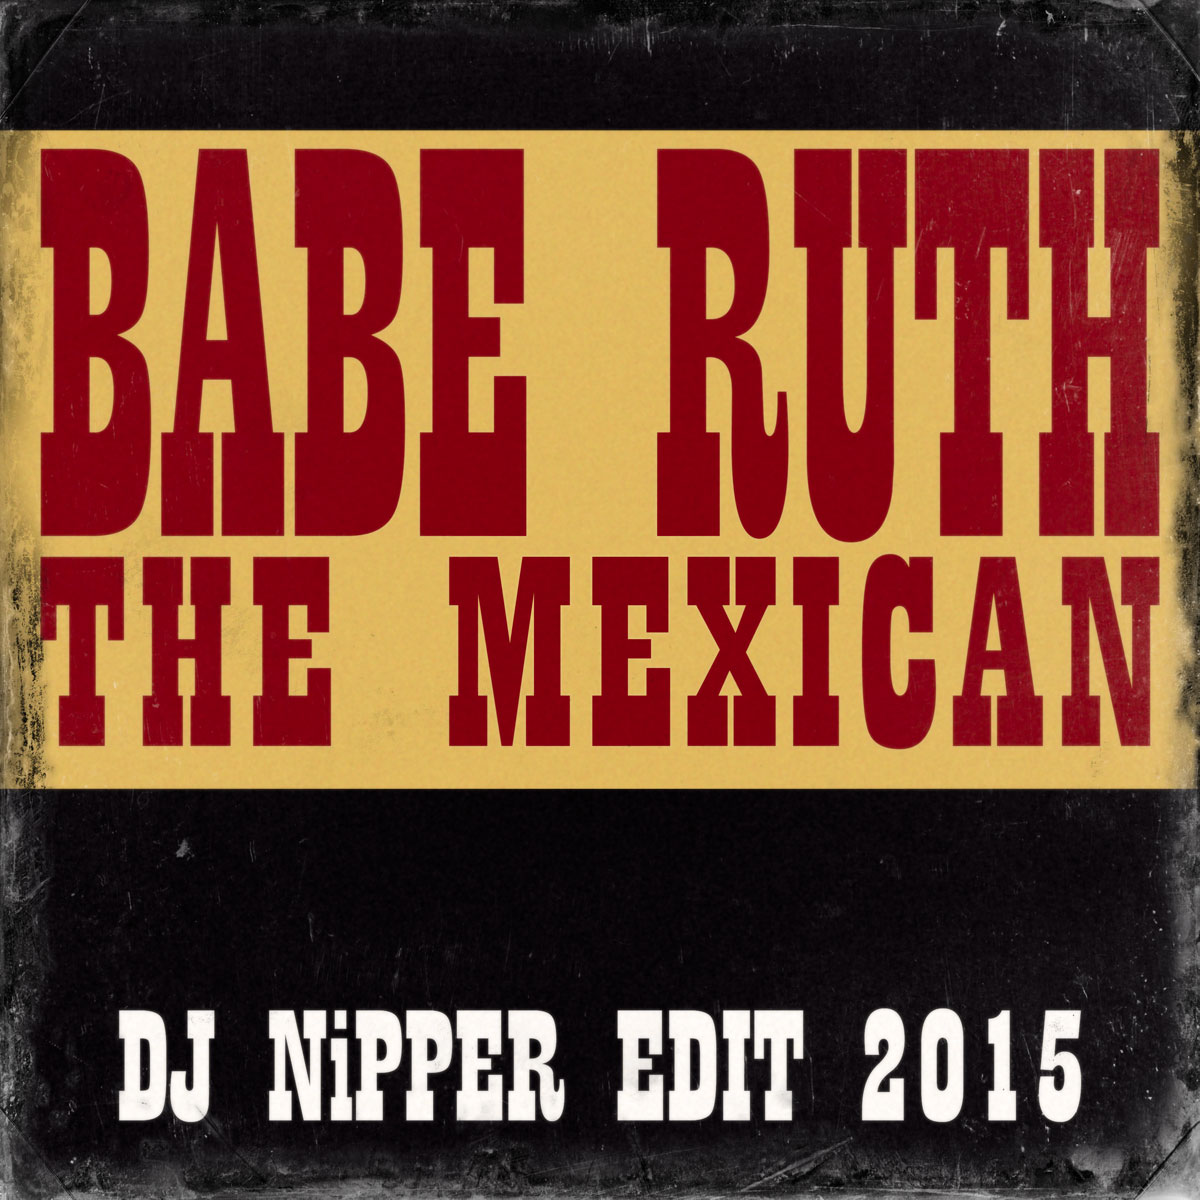 Babe-Ruth-The-Mexican-(Nipper-Edit)1200